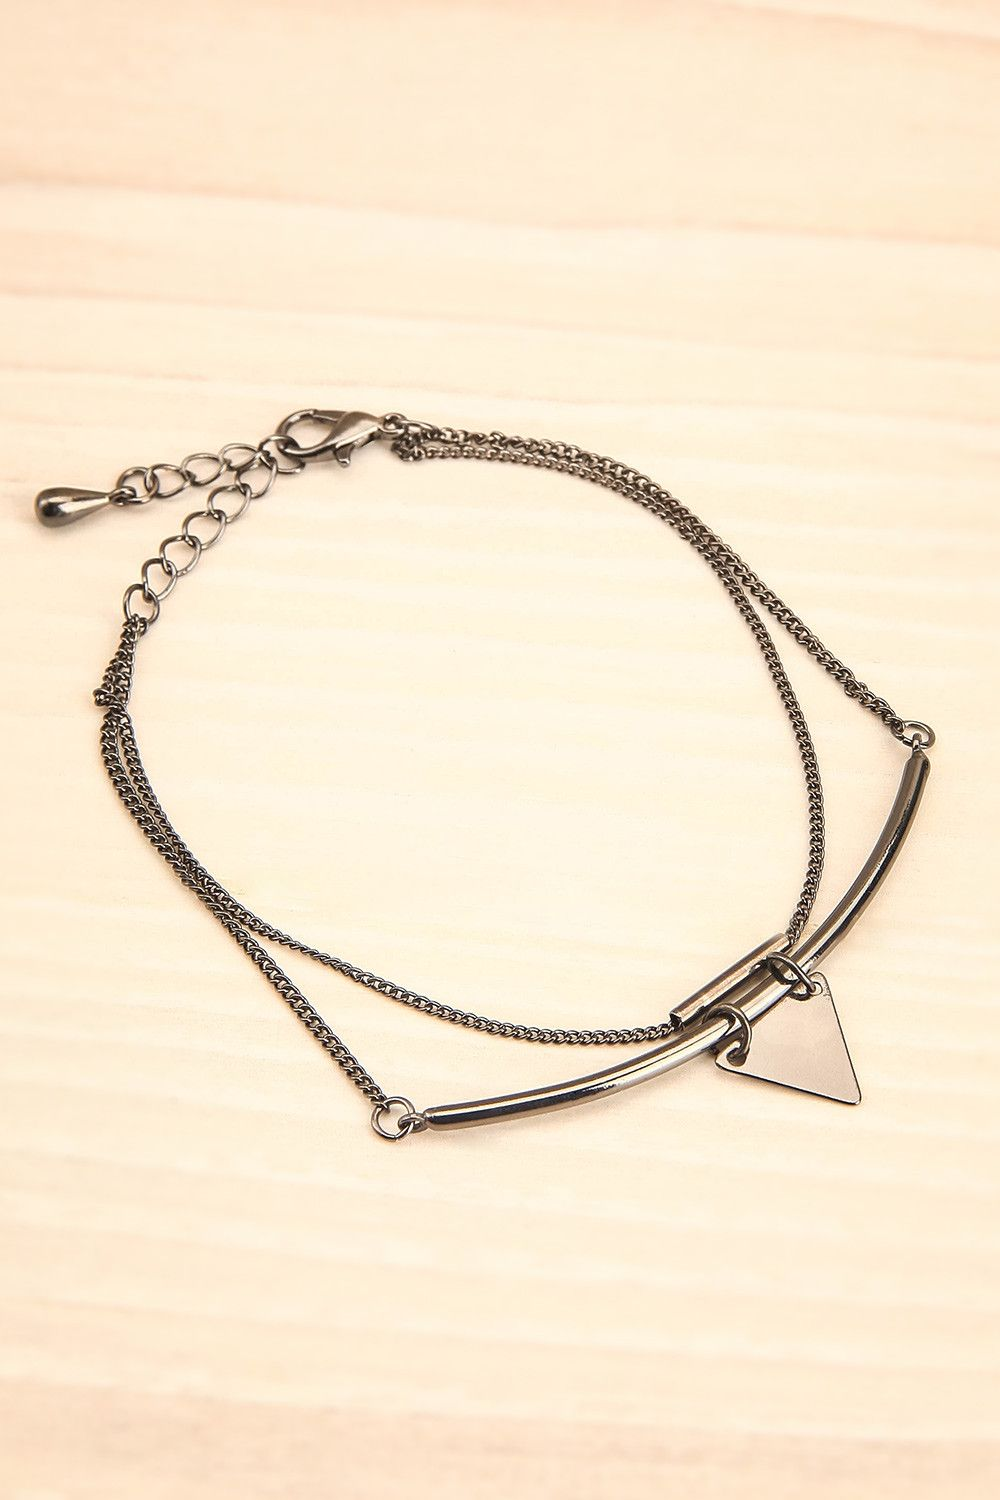 Le triangle à son poignet symbolisait l'équilibre du monde. The triangle on her wrist was a symbol for the balance of the world. Silver double chain and triangle bracelet www.1861.ca